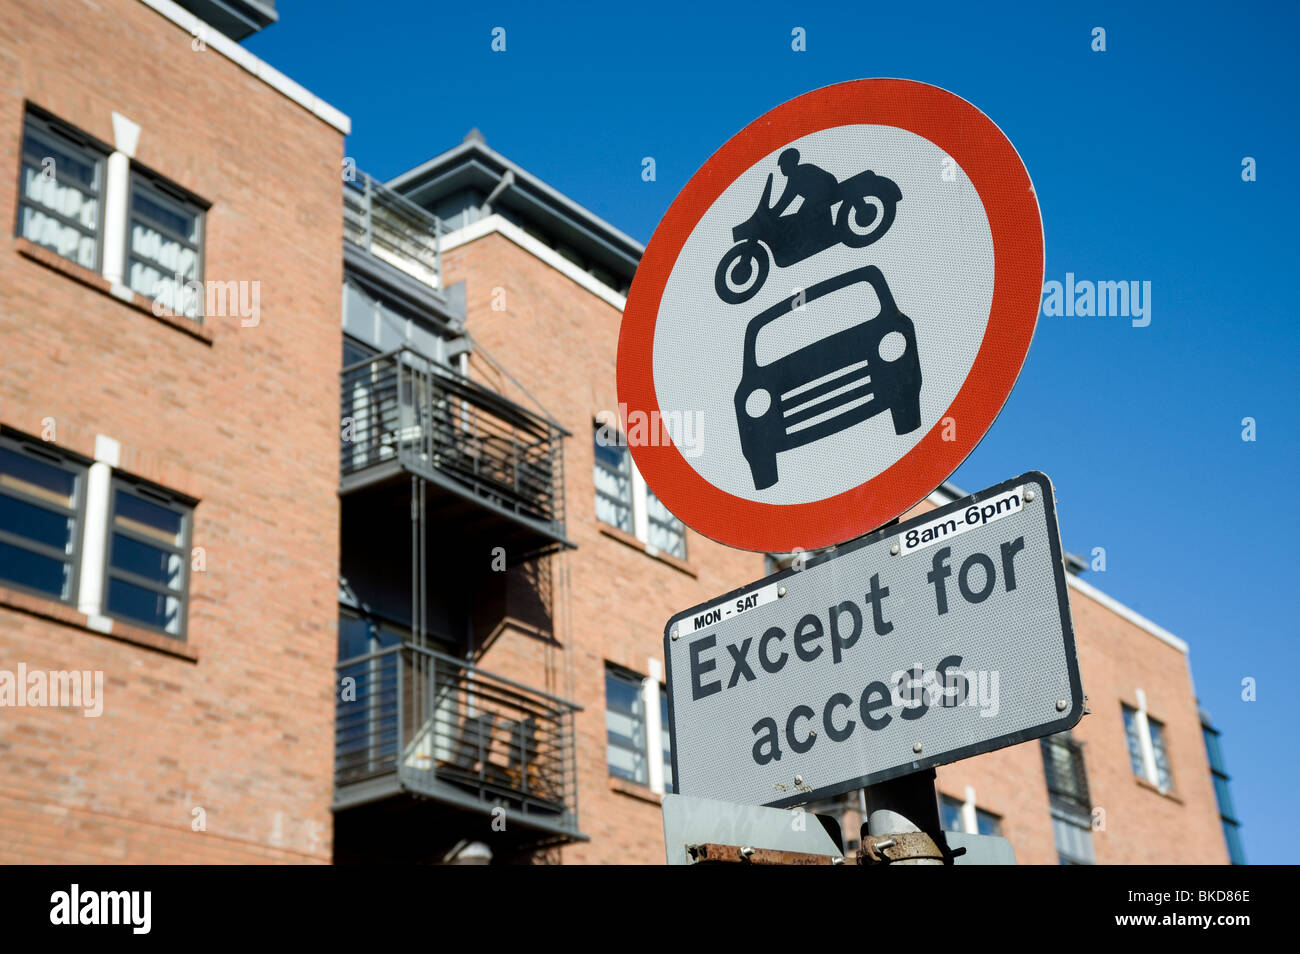 Road sign showing no entry for cars or motorcycles except for access - Stock Image